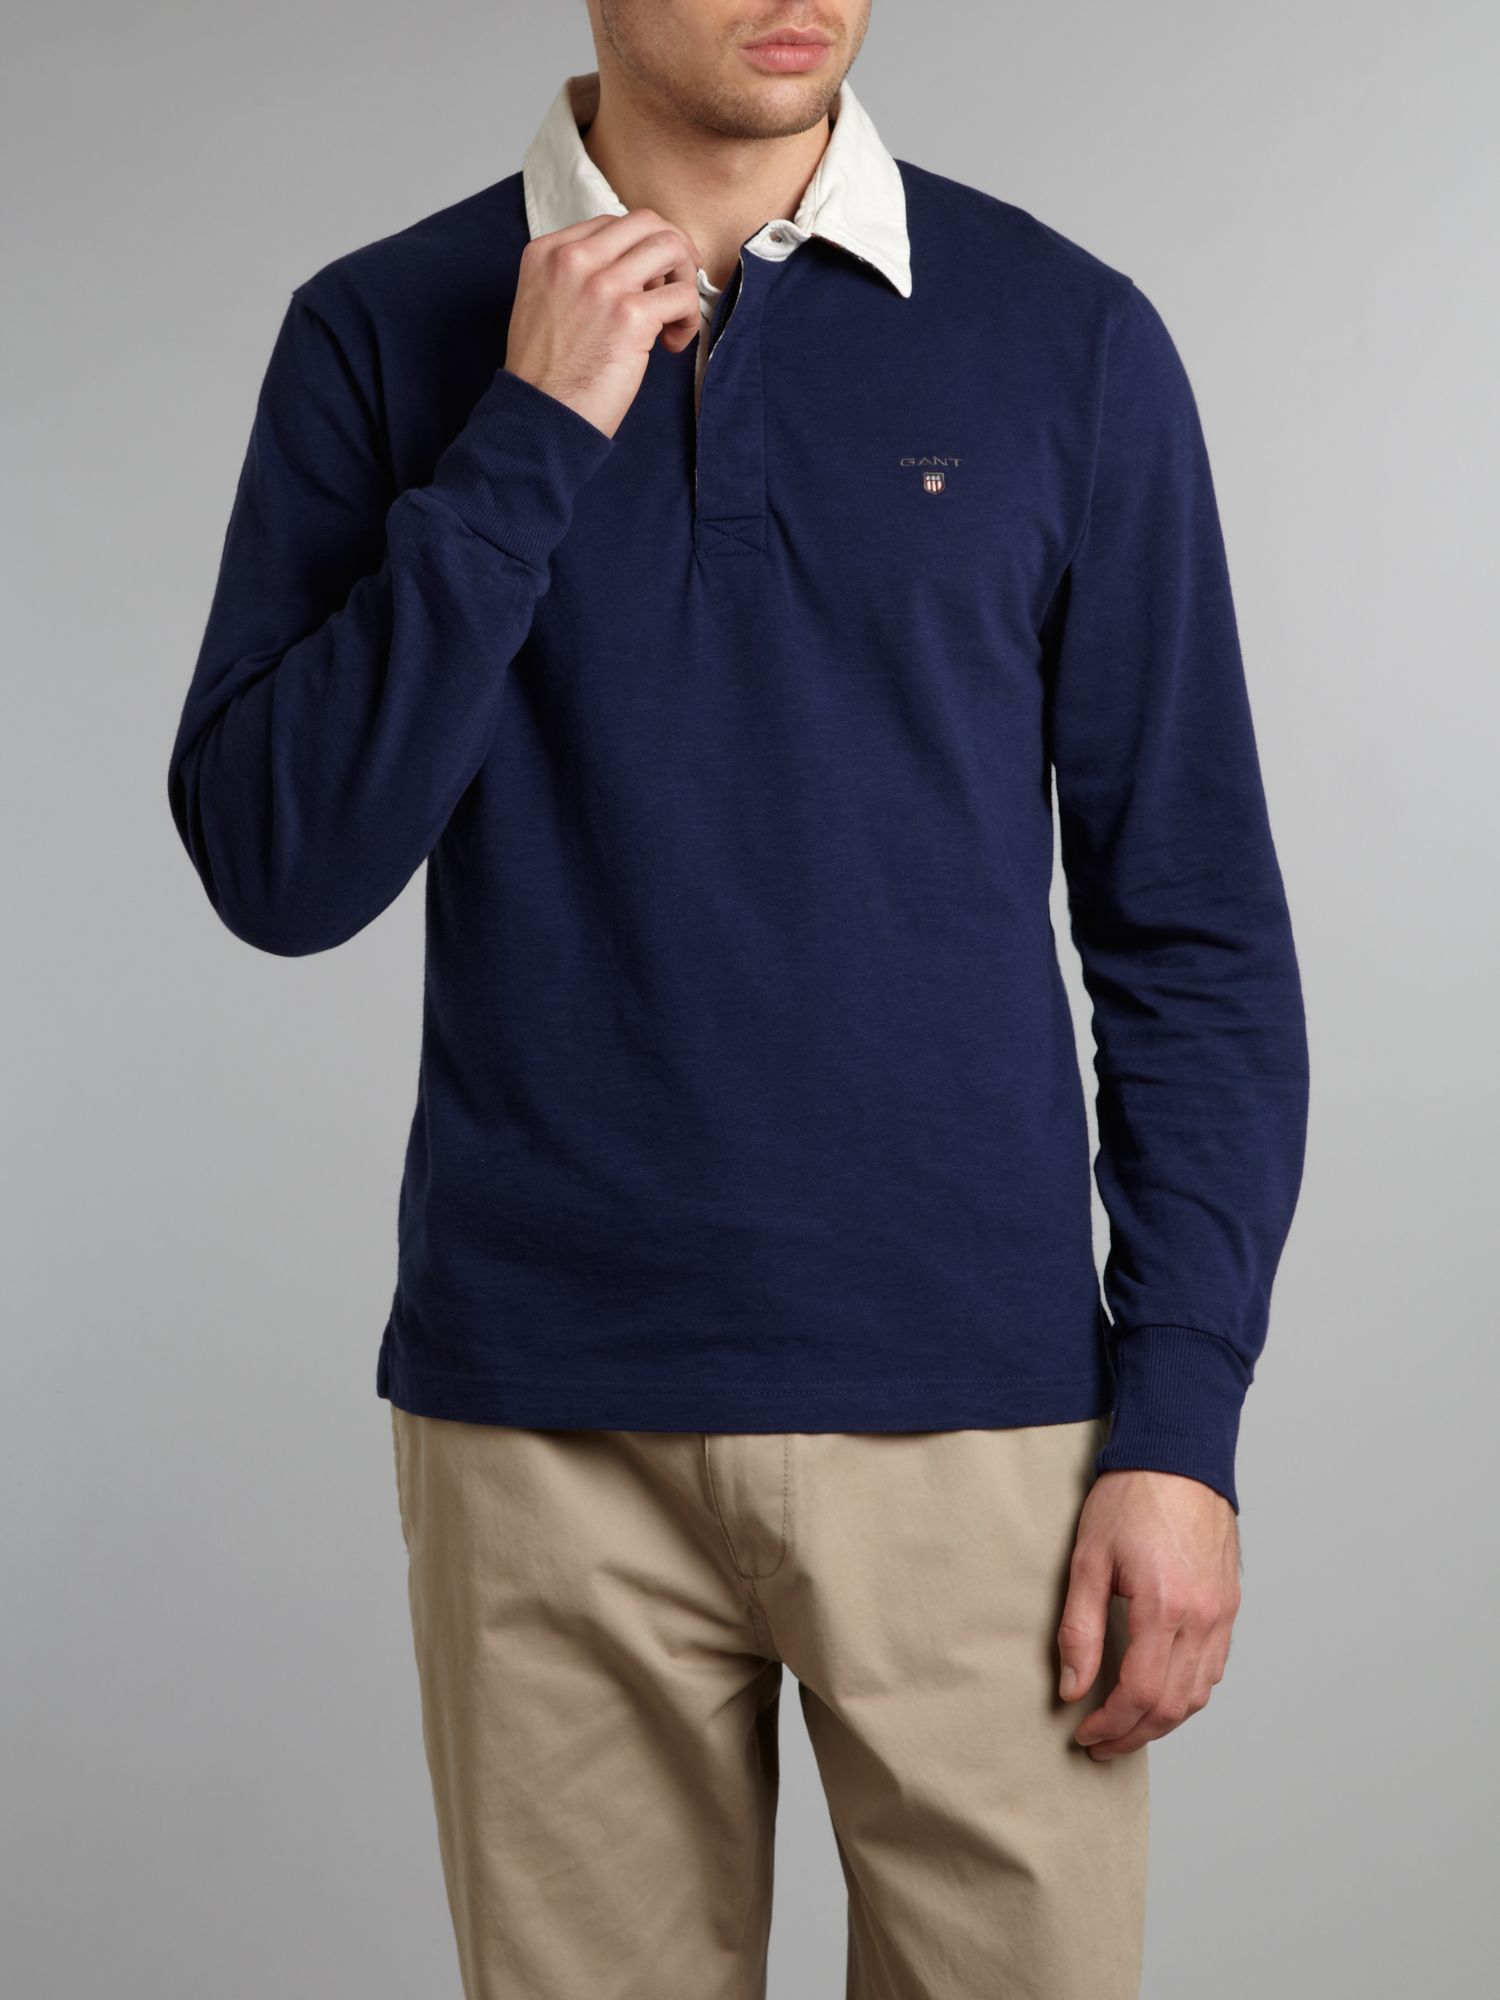 Regular fit classic rugby shirt